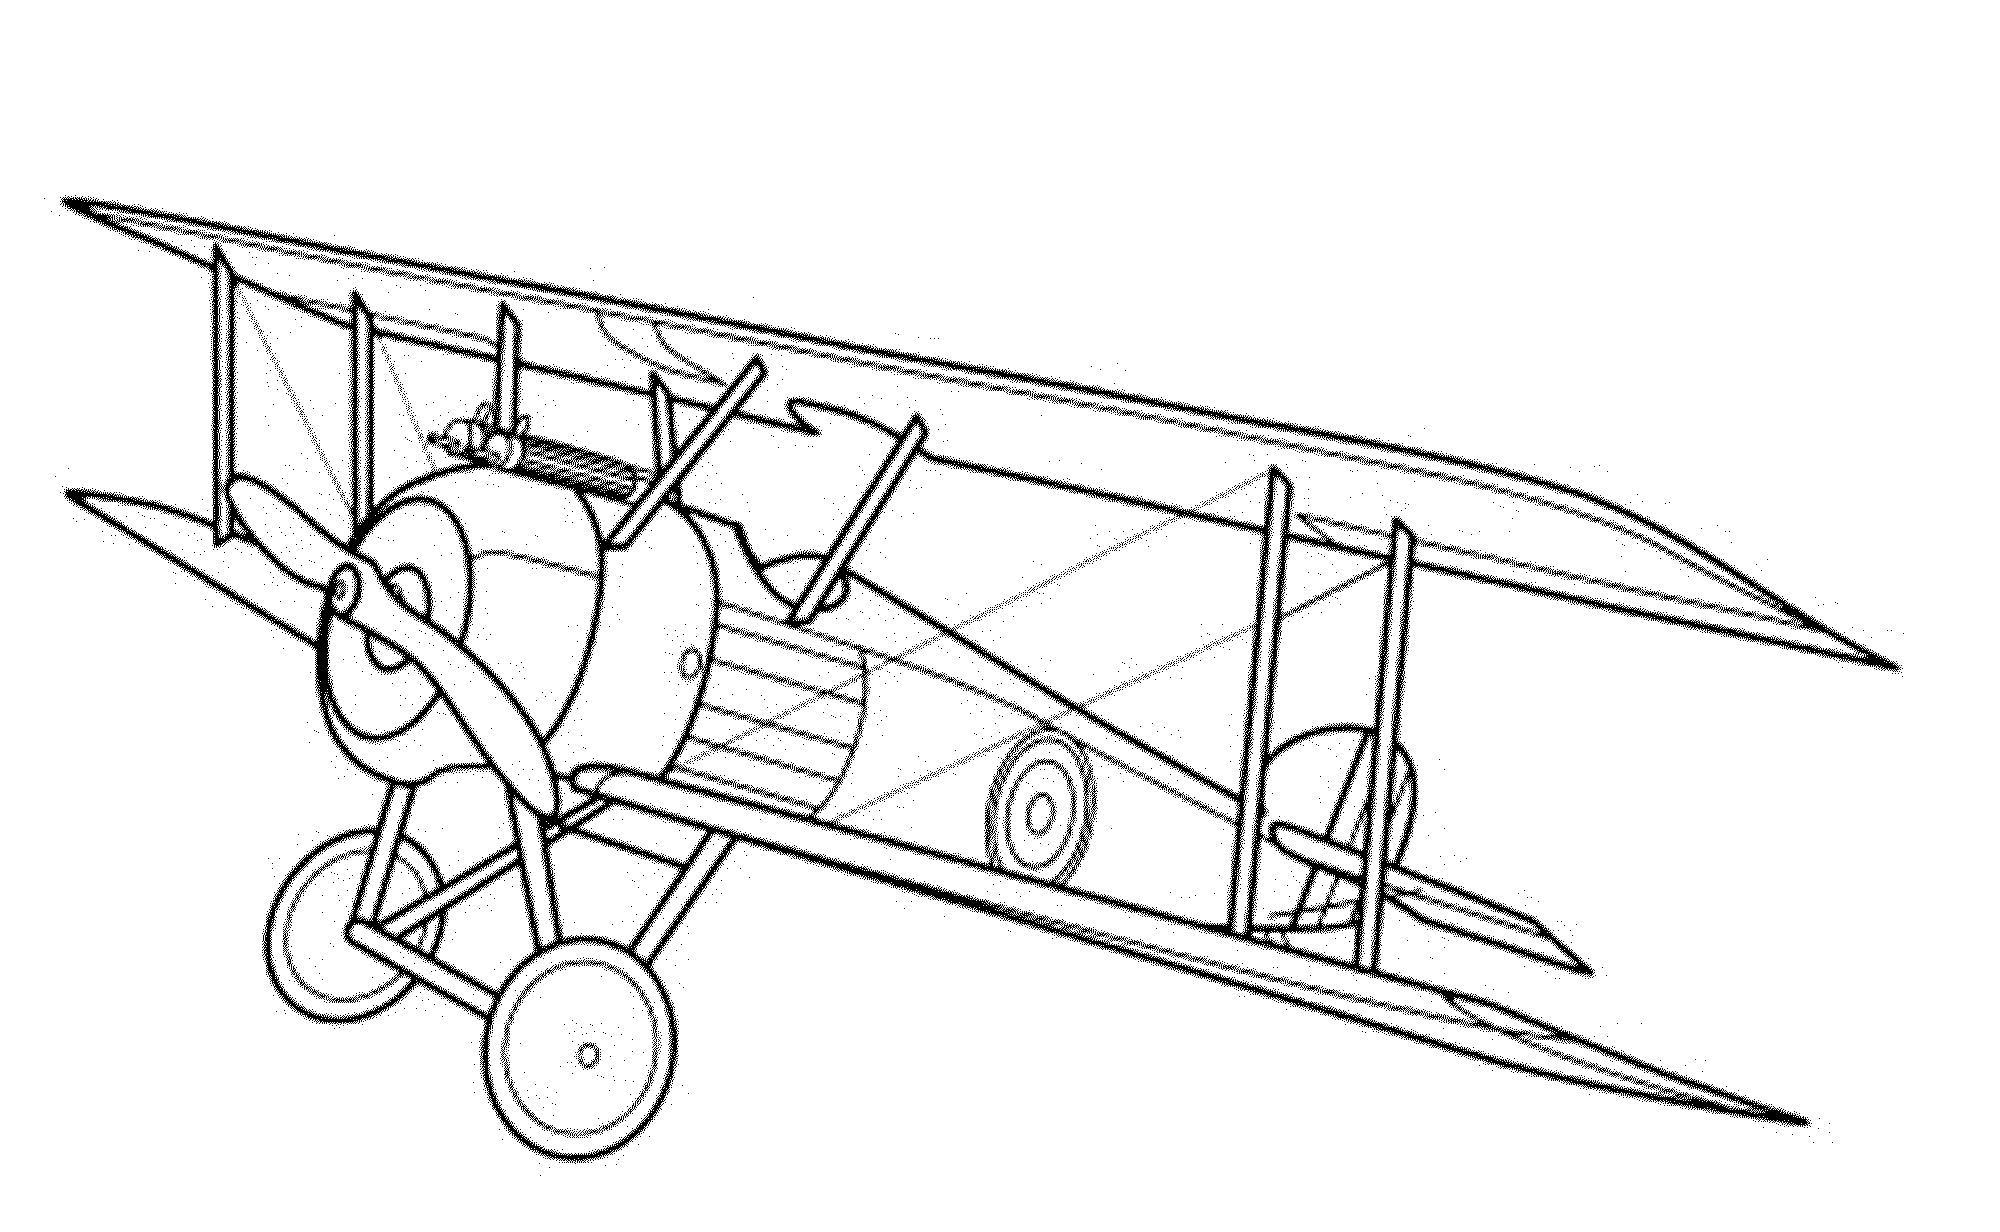 Coloring Pages Airplanes : Vintage airplane coloring pages printable kids colouring